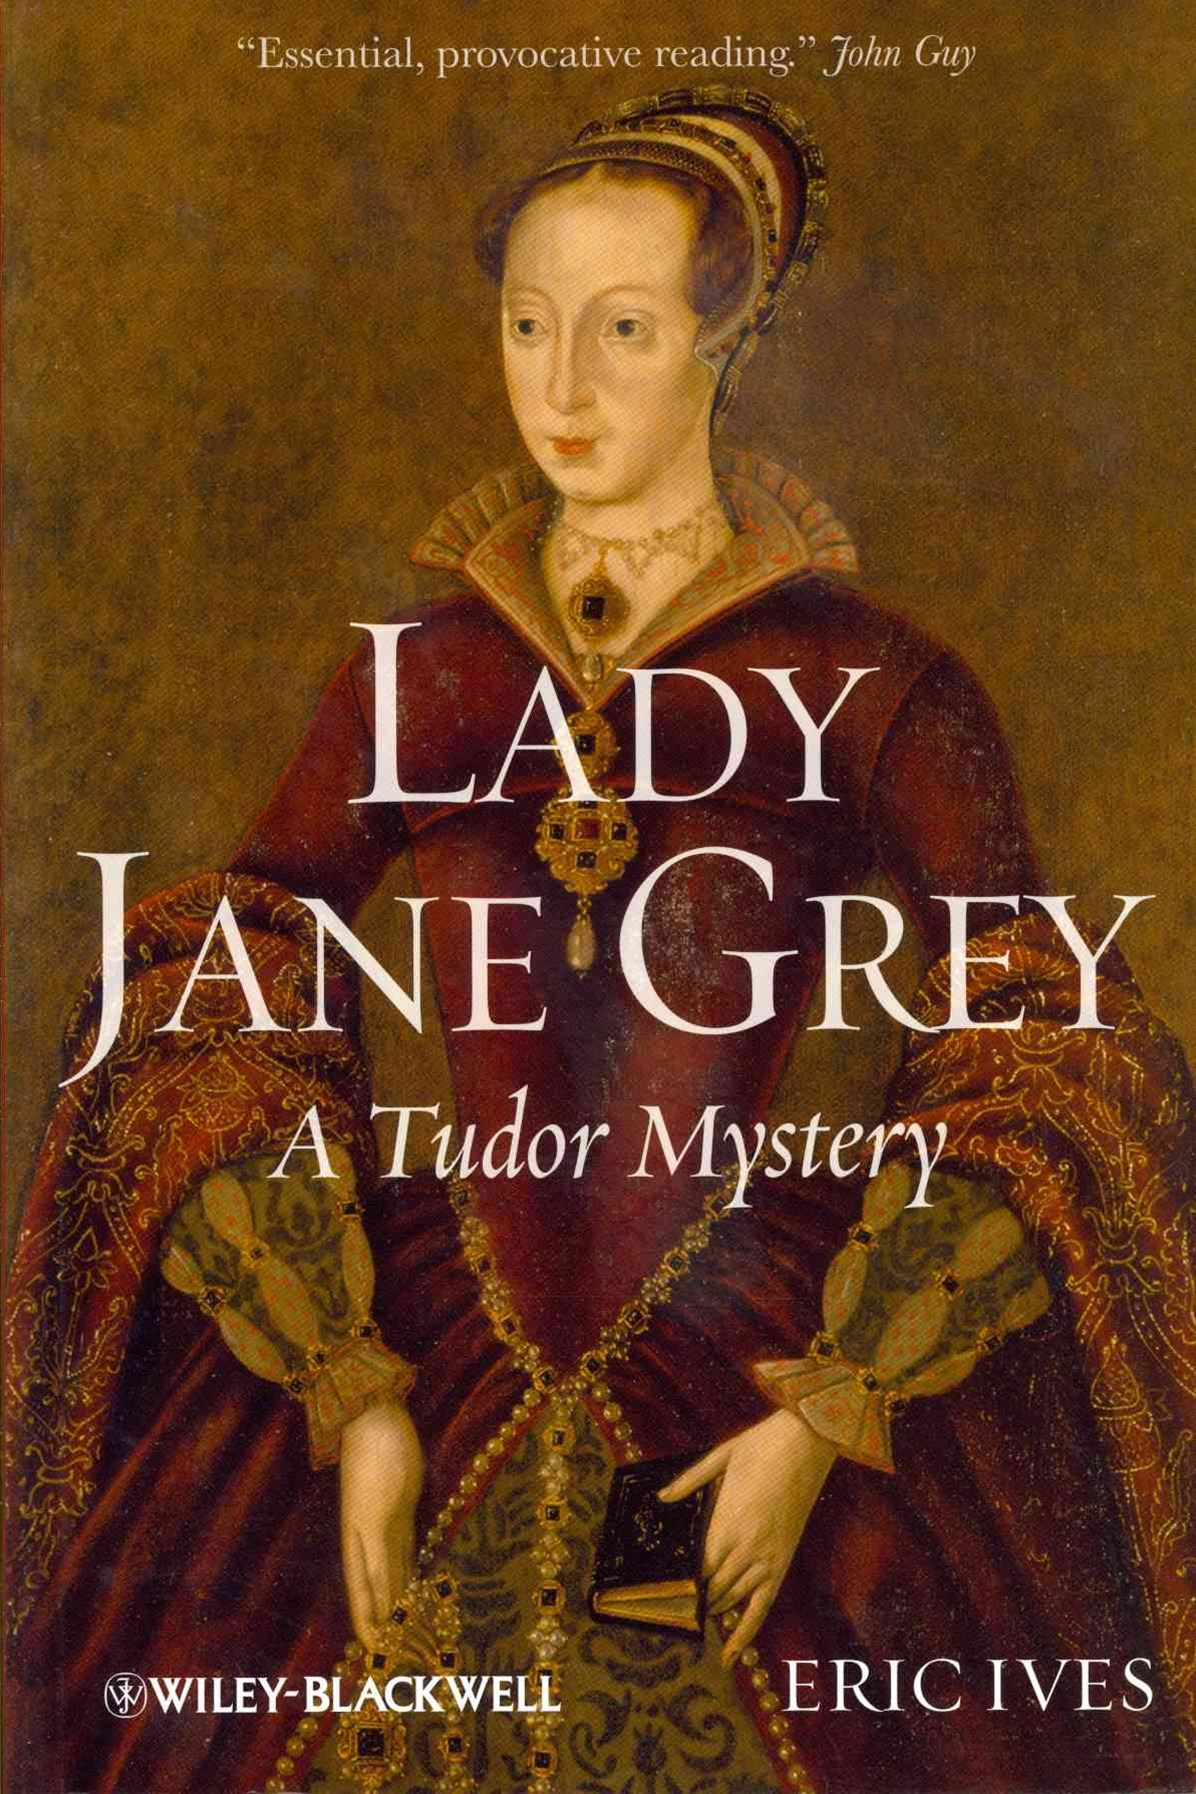 Lady Jane Grey - a Tudor Mystery